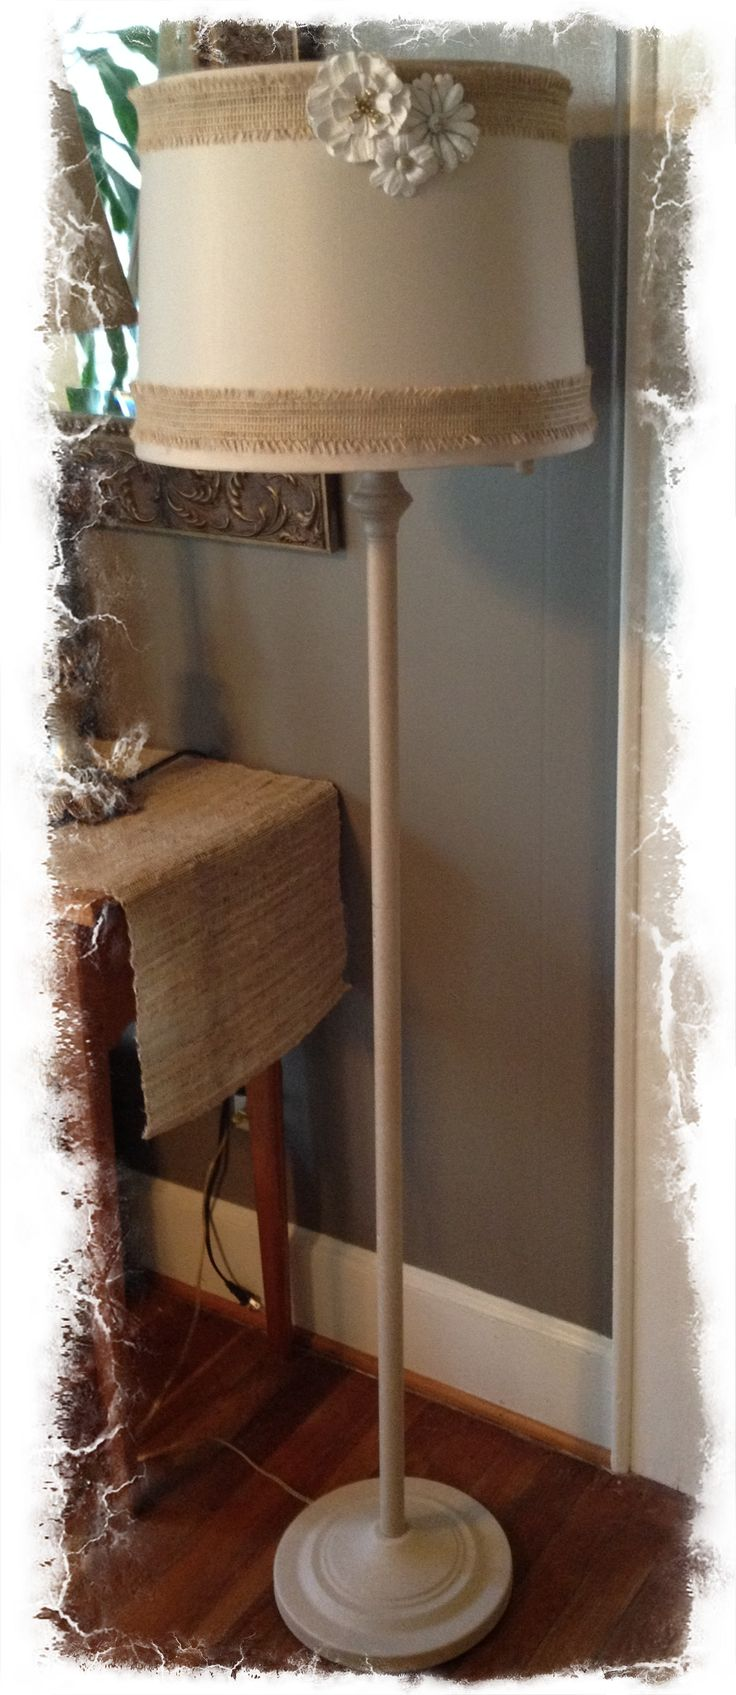 Plain floor lamp sprayed w/textured paint.  Lamp shade embellished with jute ribbon and flower decals.